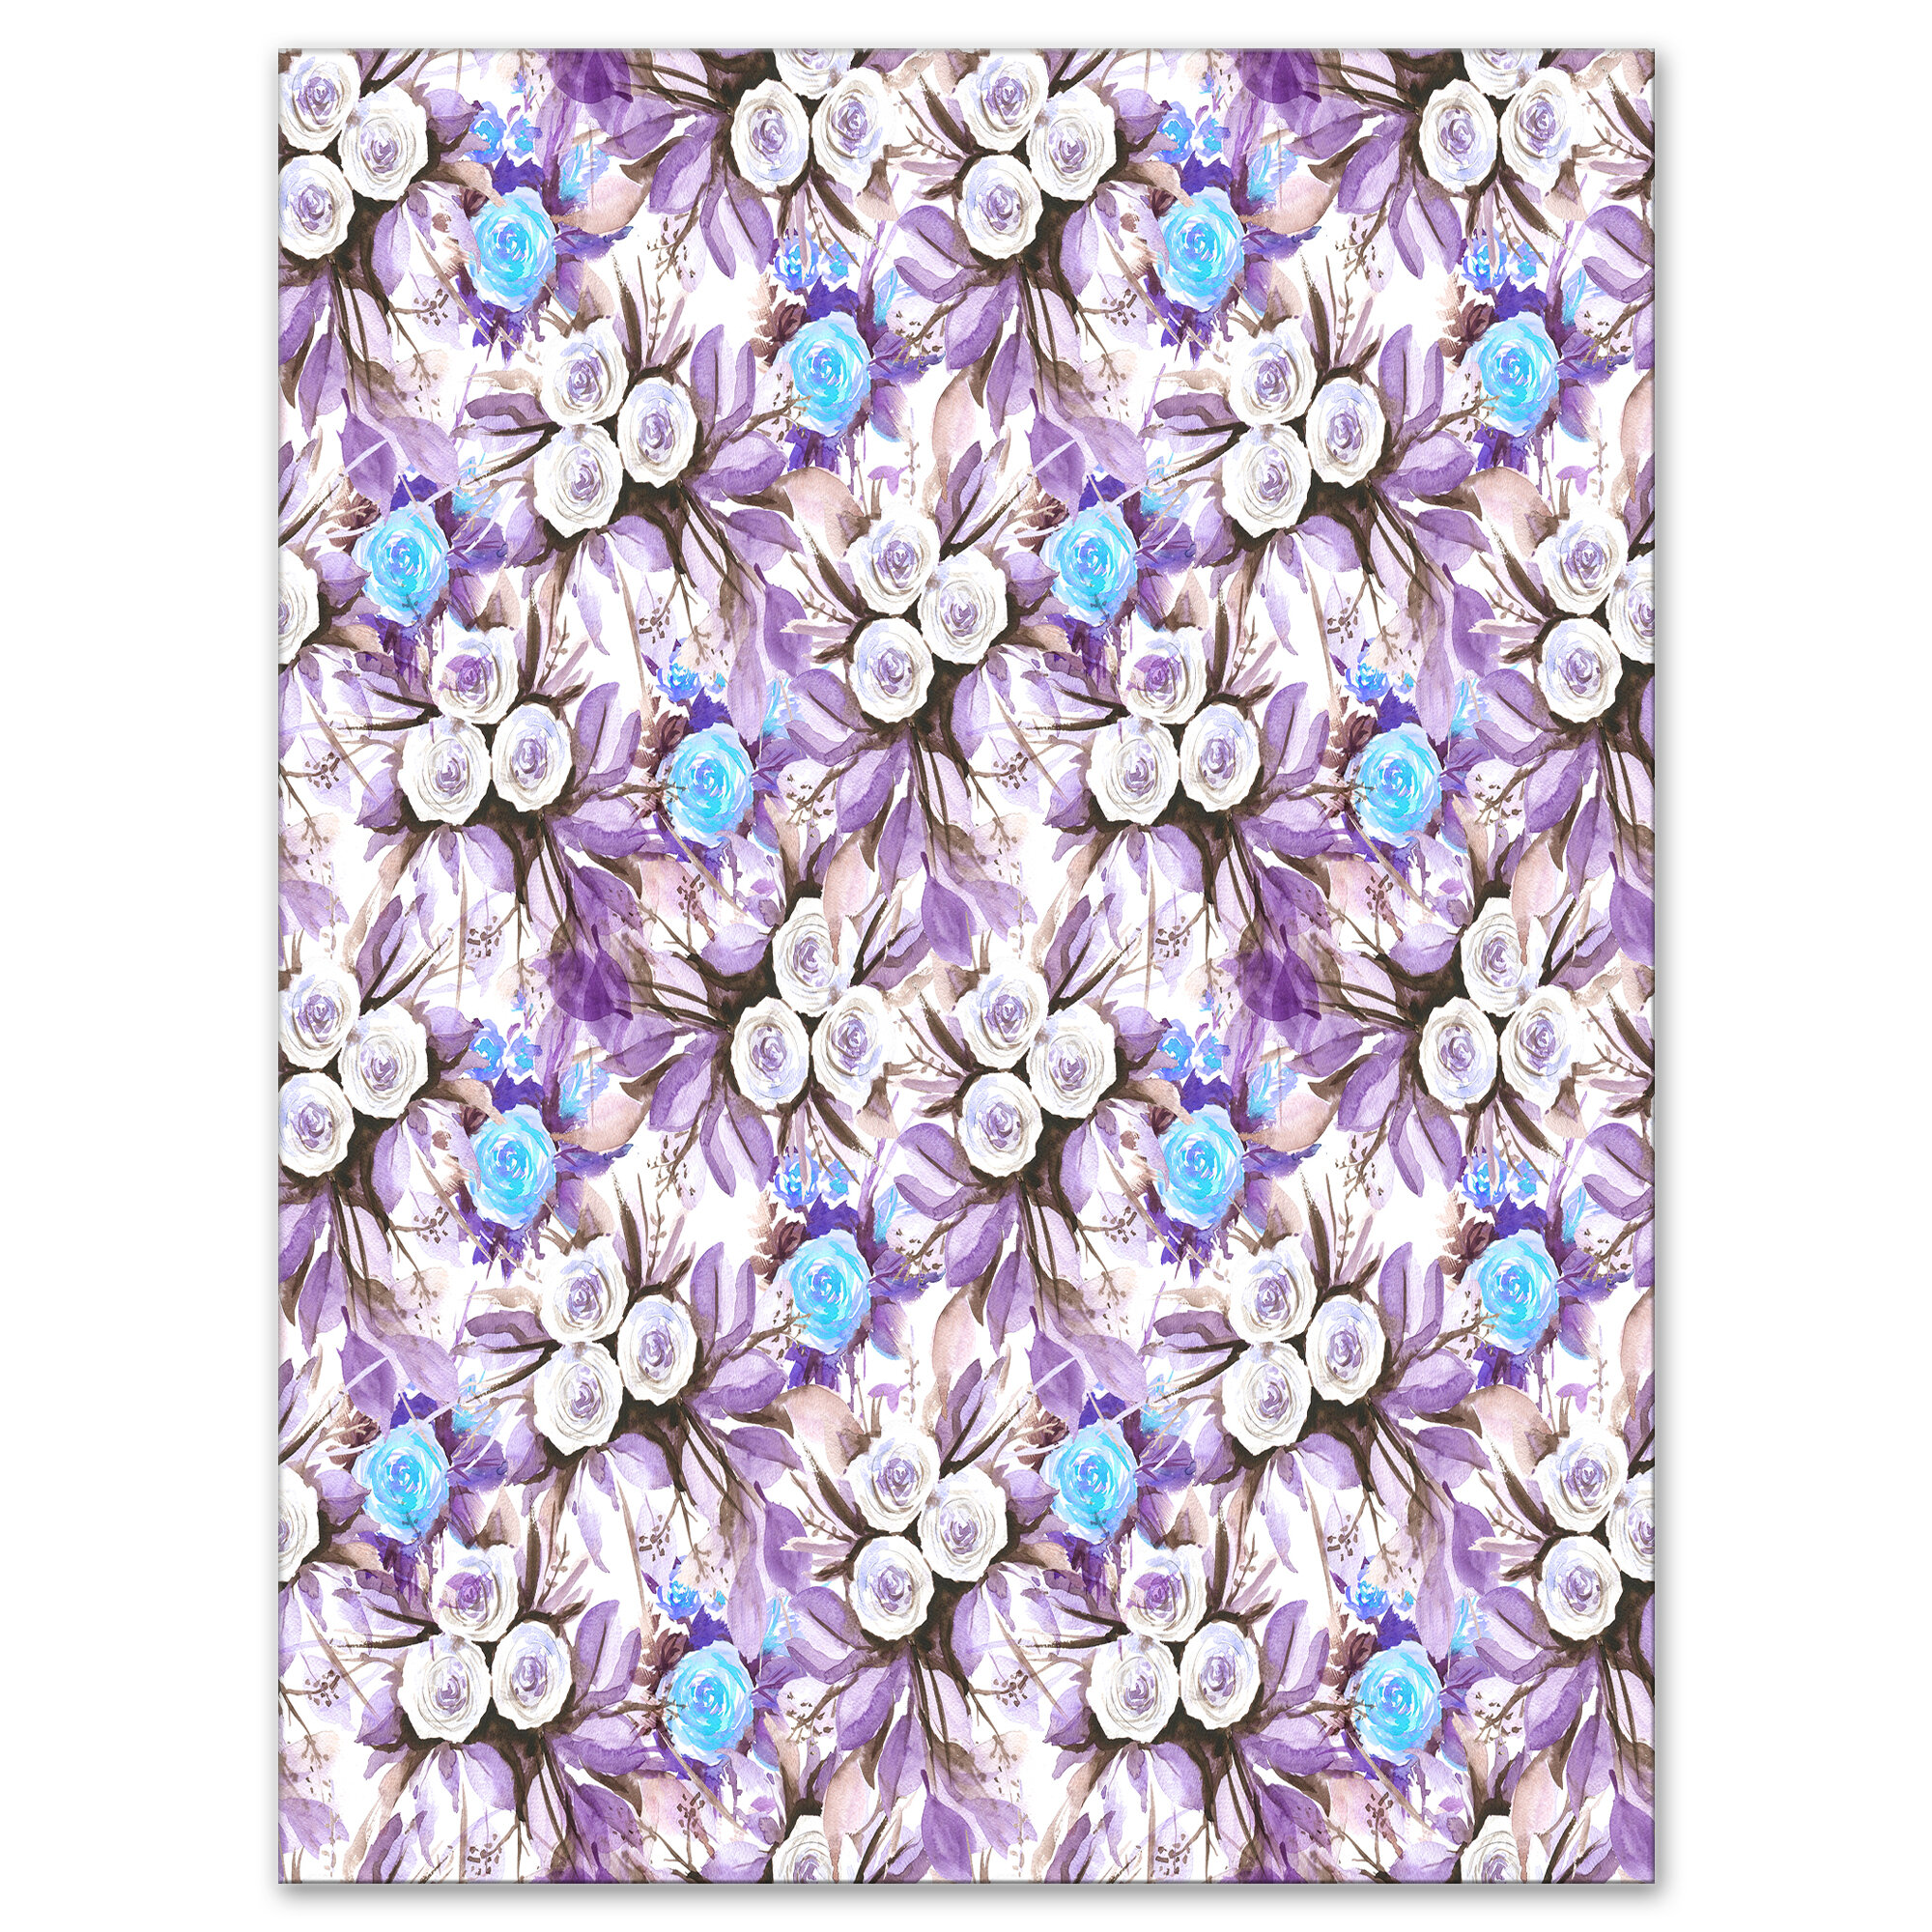 East Urban Home Floral Cascade Bouquet Royal Blue Purple And White